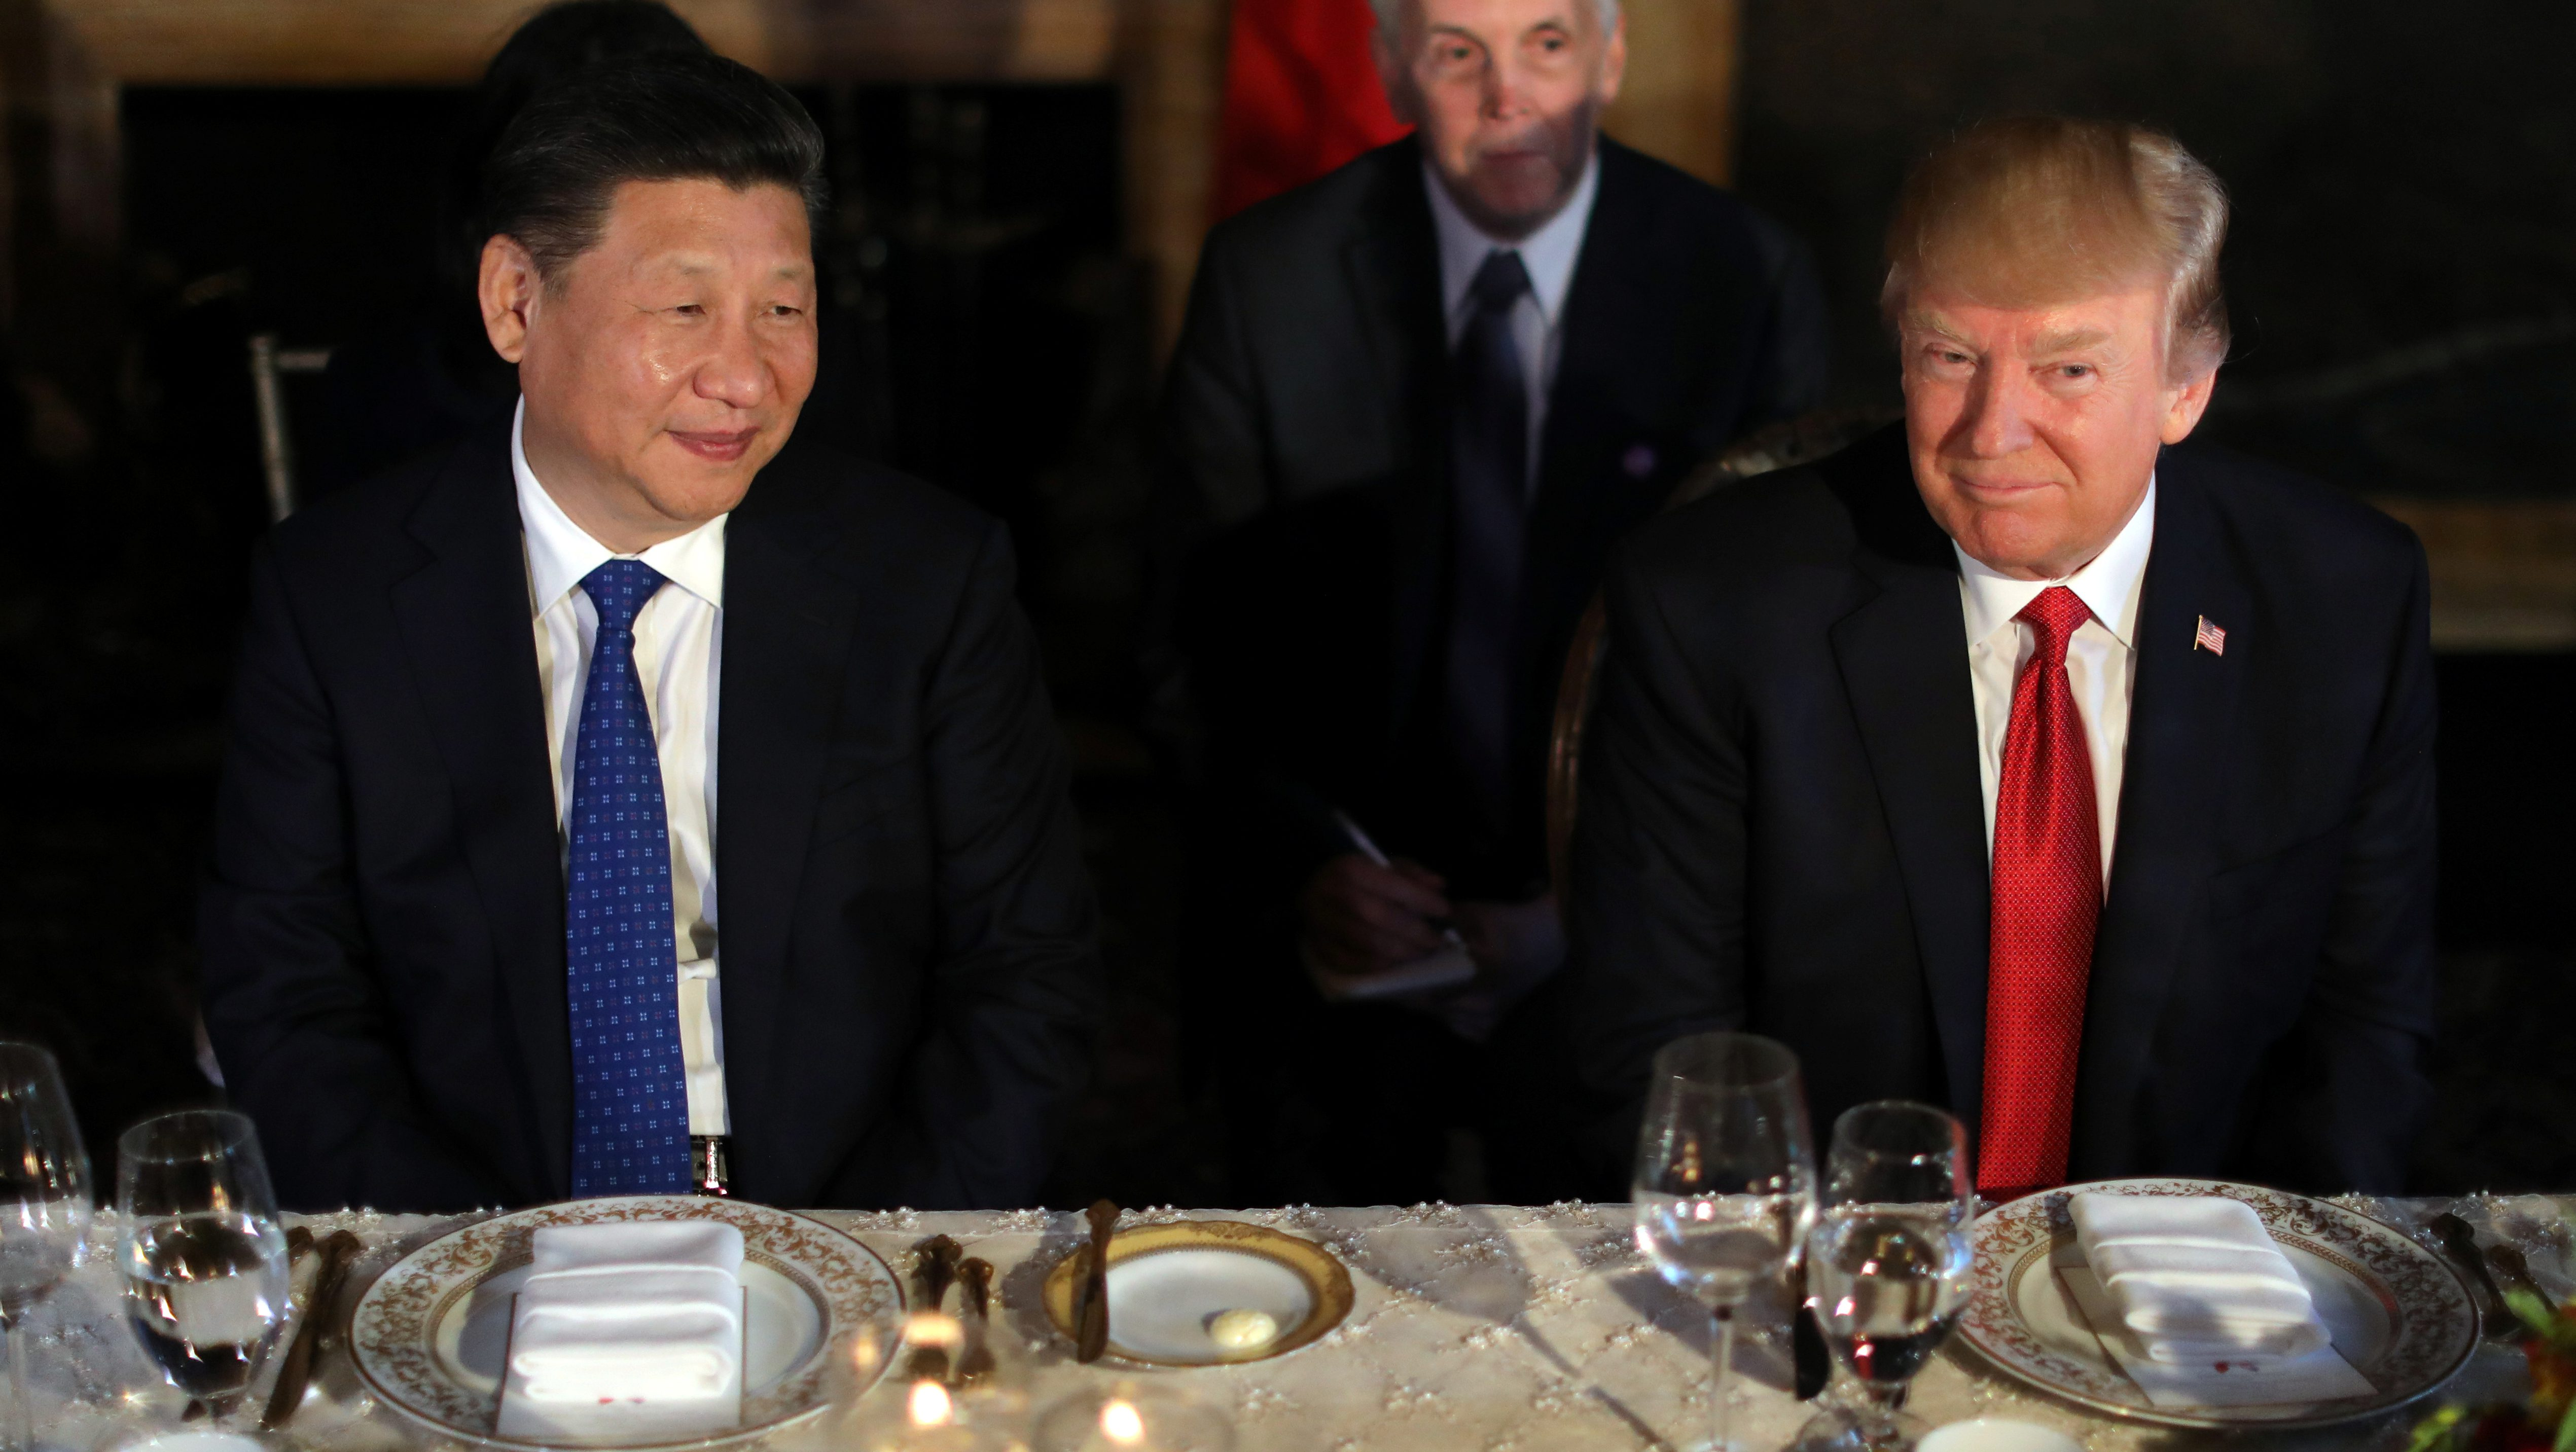 Chinese President Xi Jinping and U.S. President Donald Trump attend a dinner at the start of their summit at Trump's Mar-a-Lago estate in West Palm Beach, Florida, U.S., April 6, 2017. REUTERS/Carlos Barria - RTX34GVG